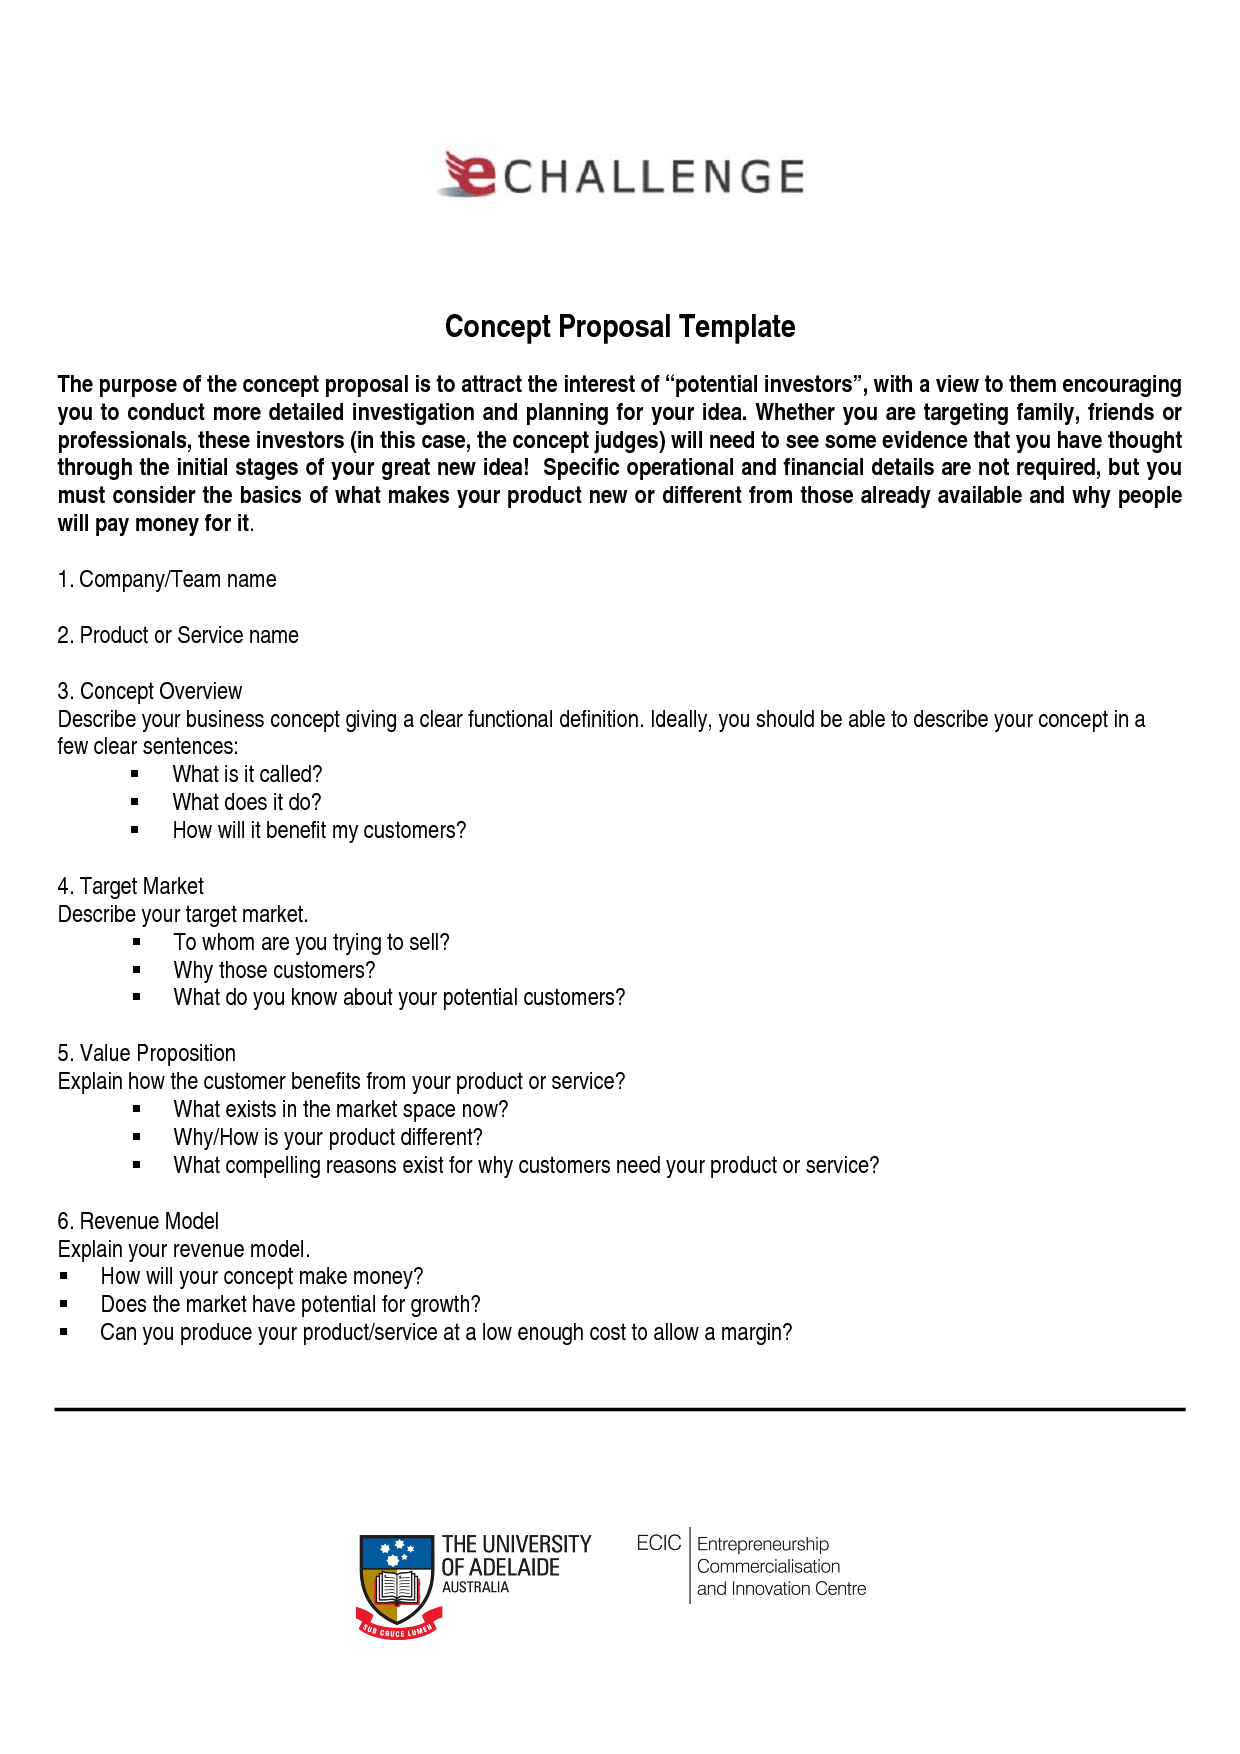 proposal ideas template Yahoo Image Search Results